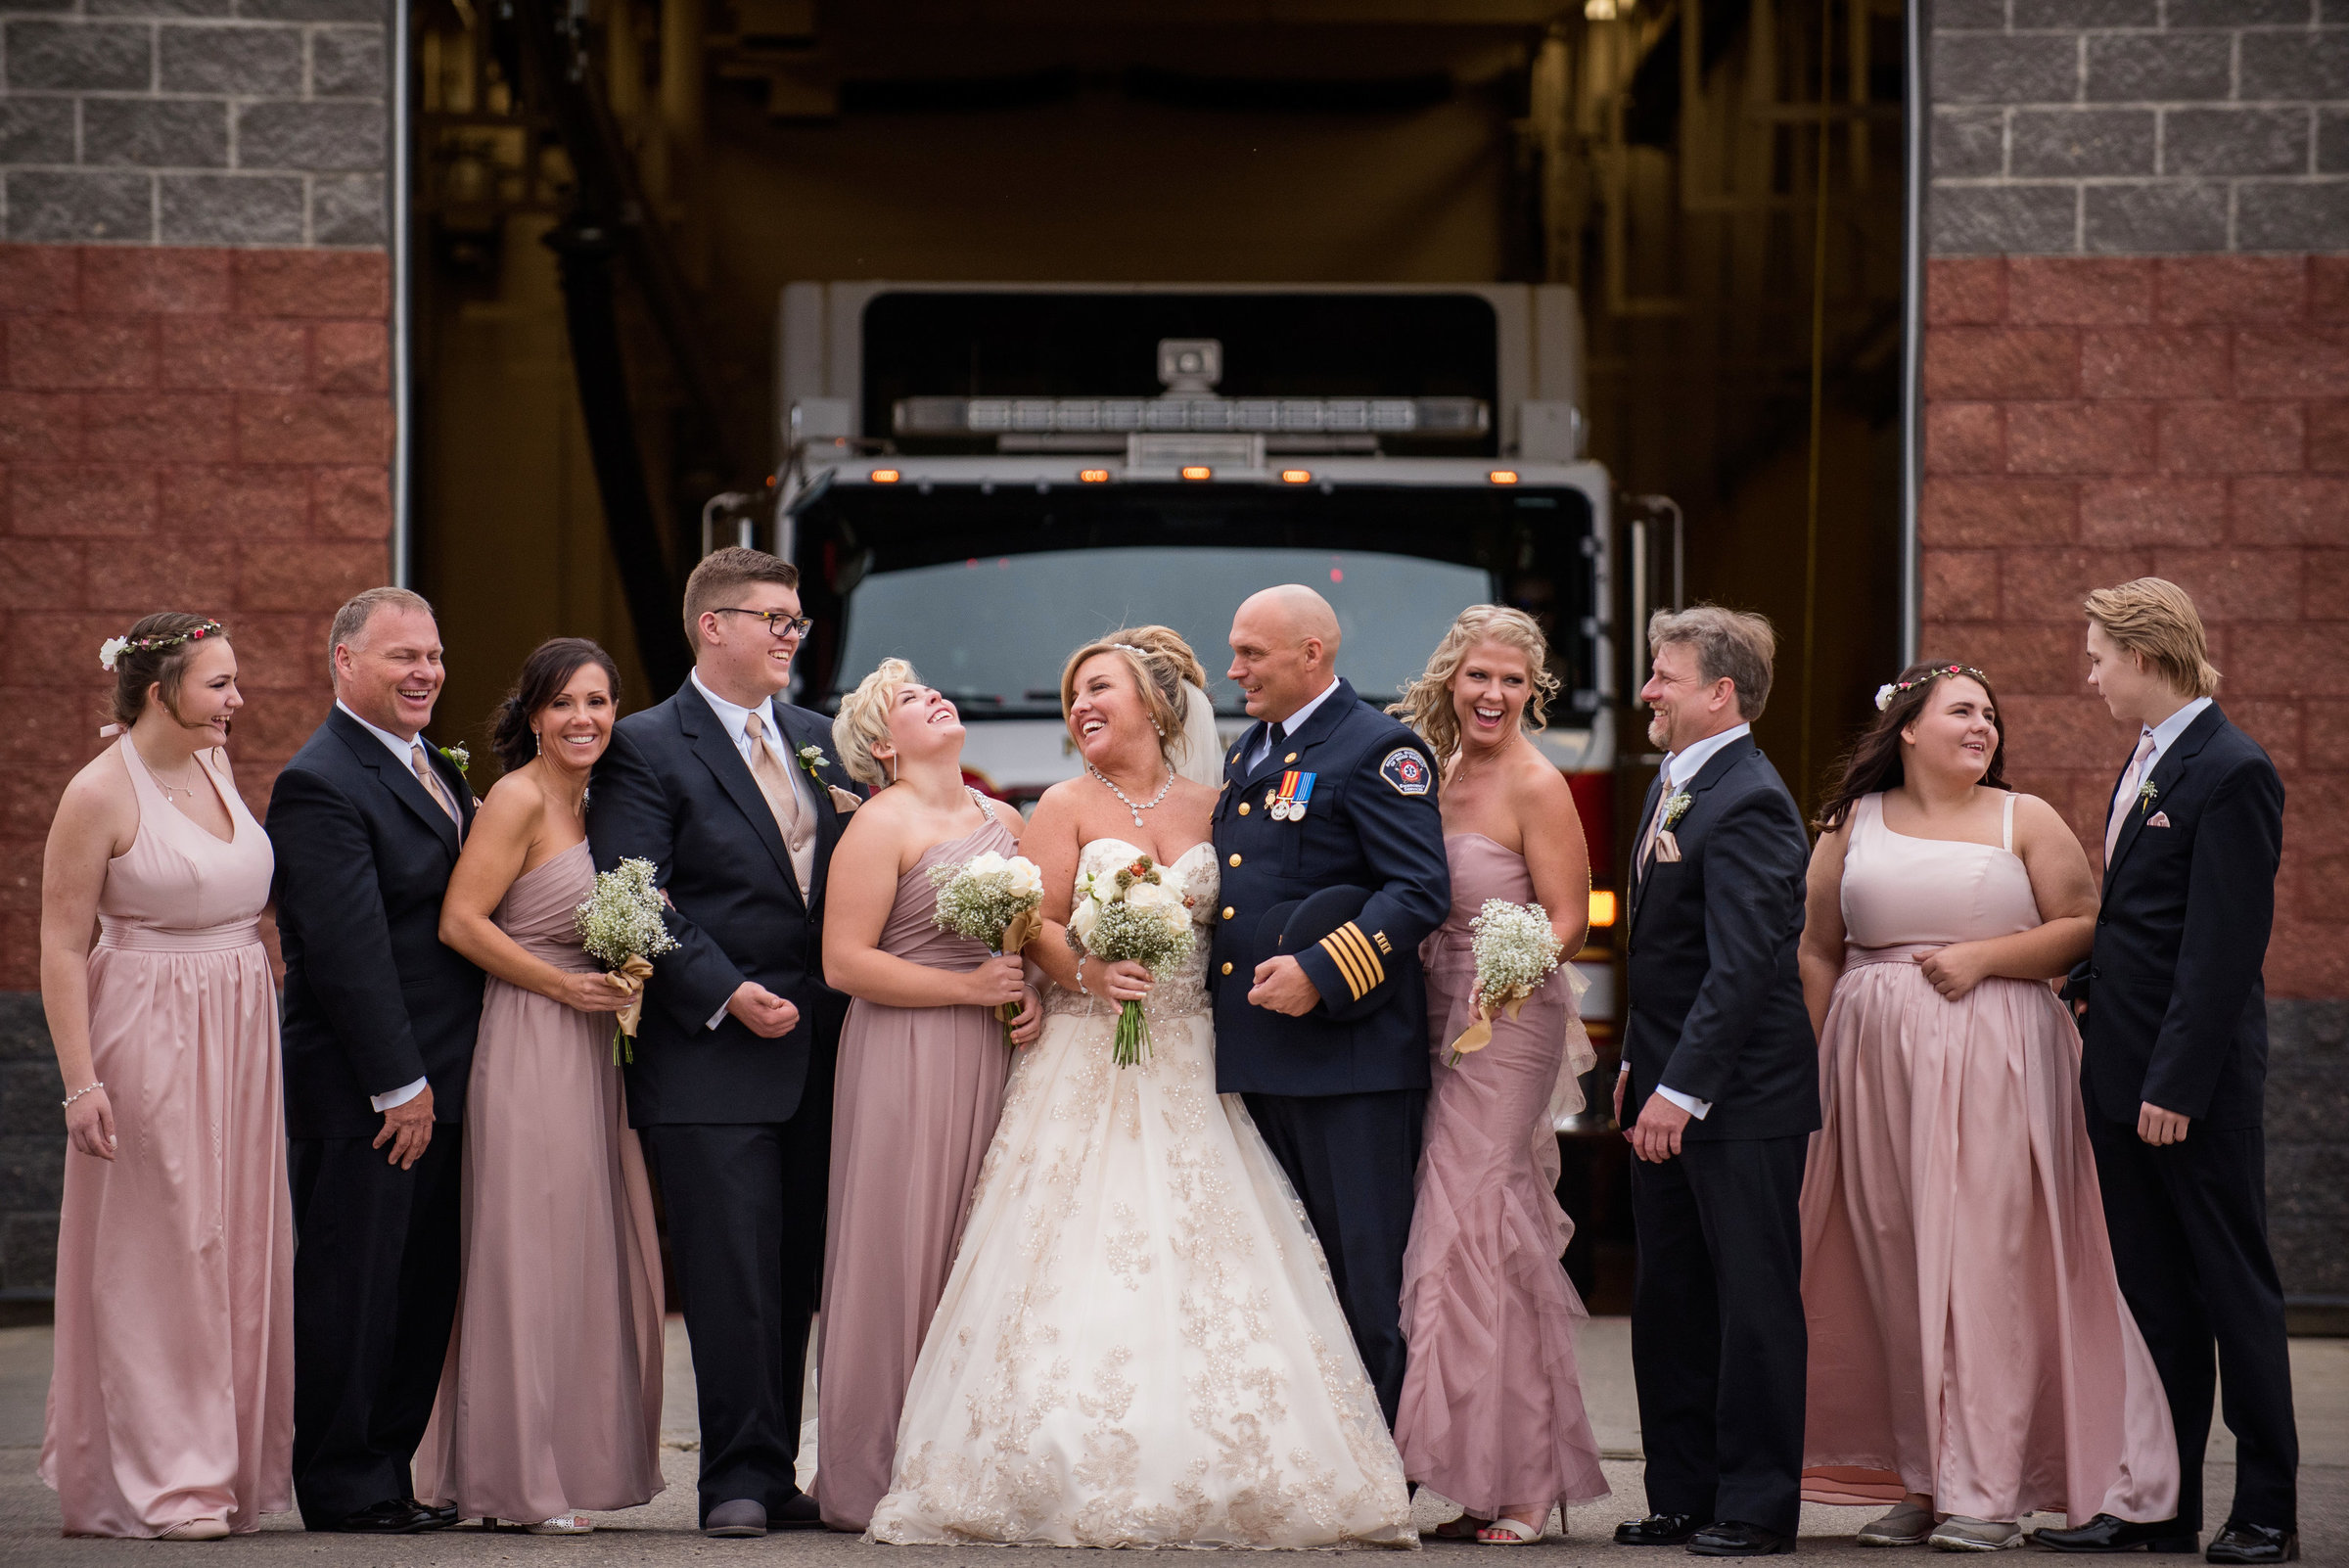 Fire Fighter and wedding party at a firehall in Fort McMurray Alberta by Chrystal Stringer